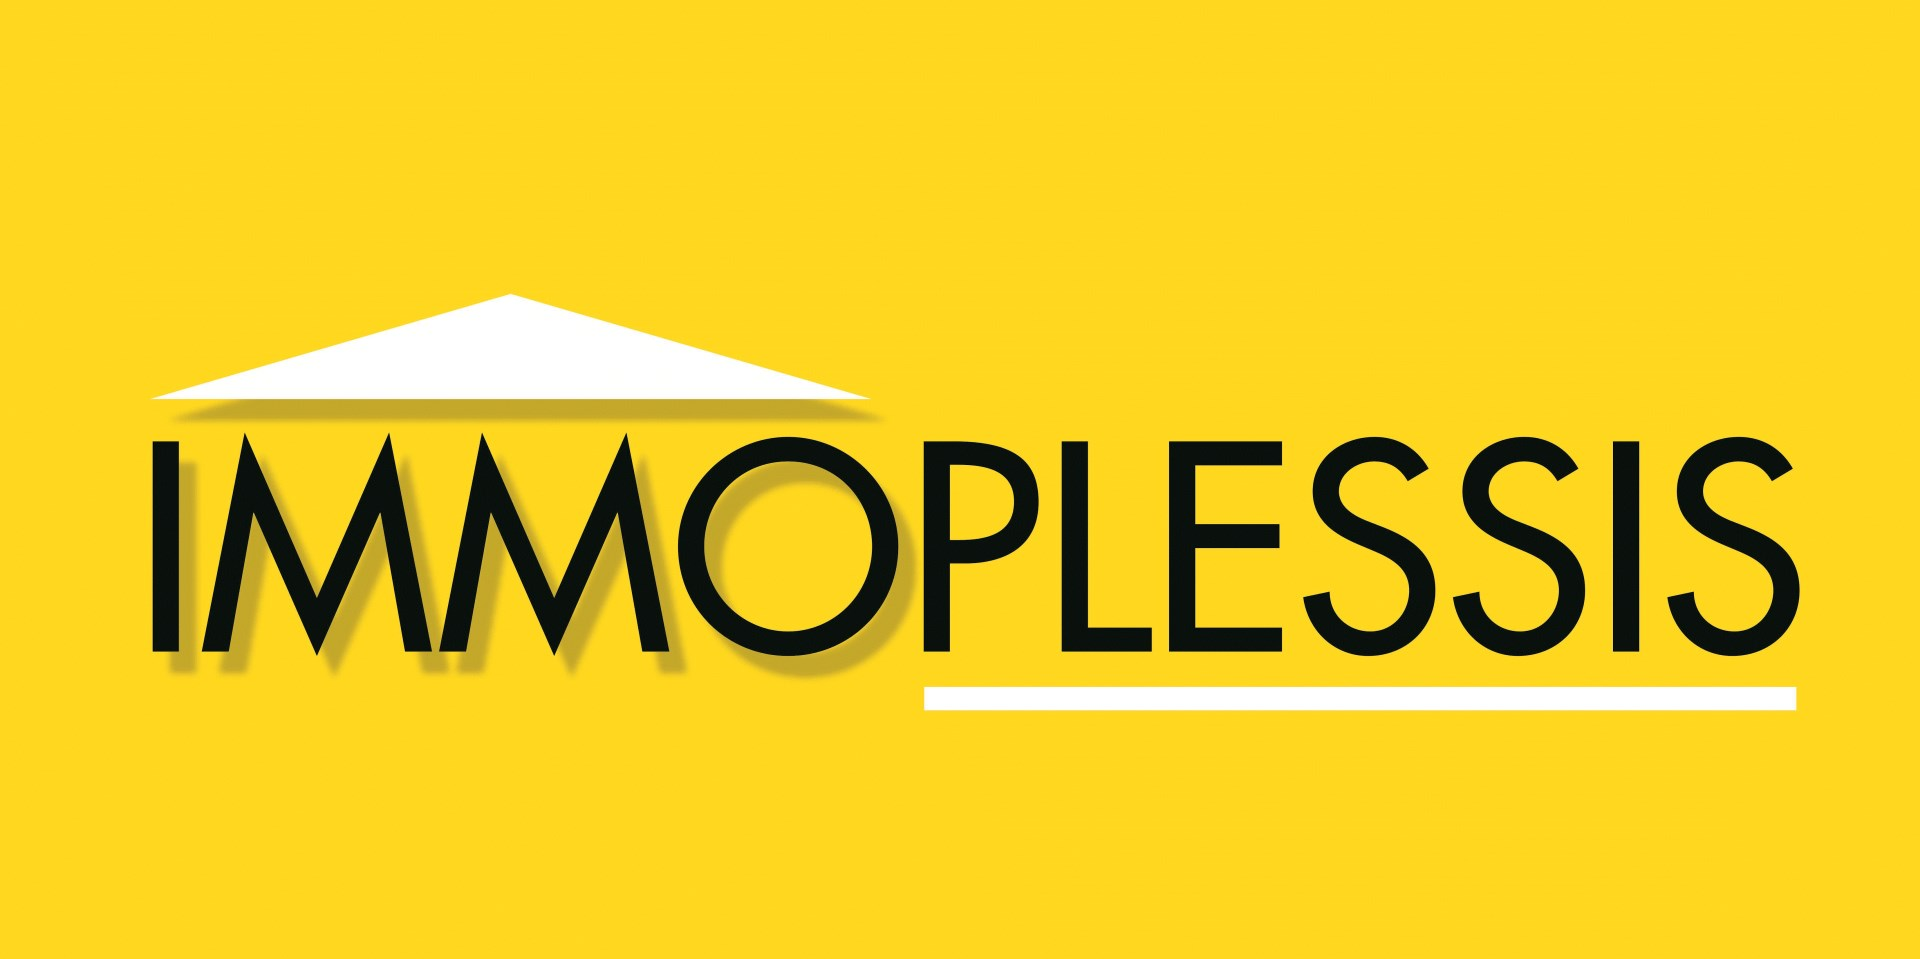 Immoplessis agence immobili re le plessis robinson for Agence immobiliere i